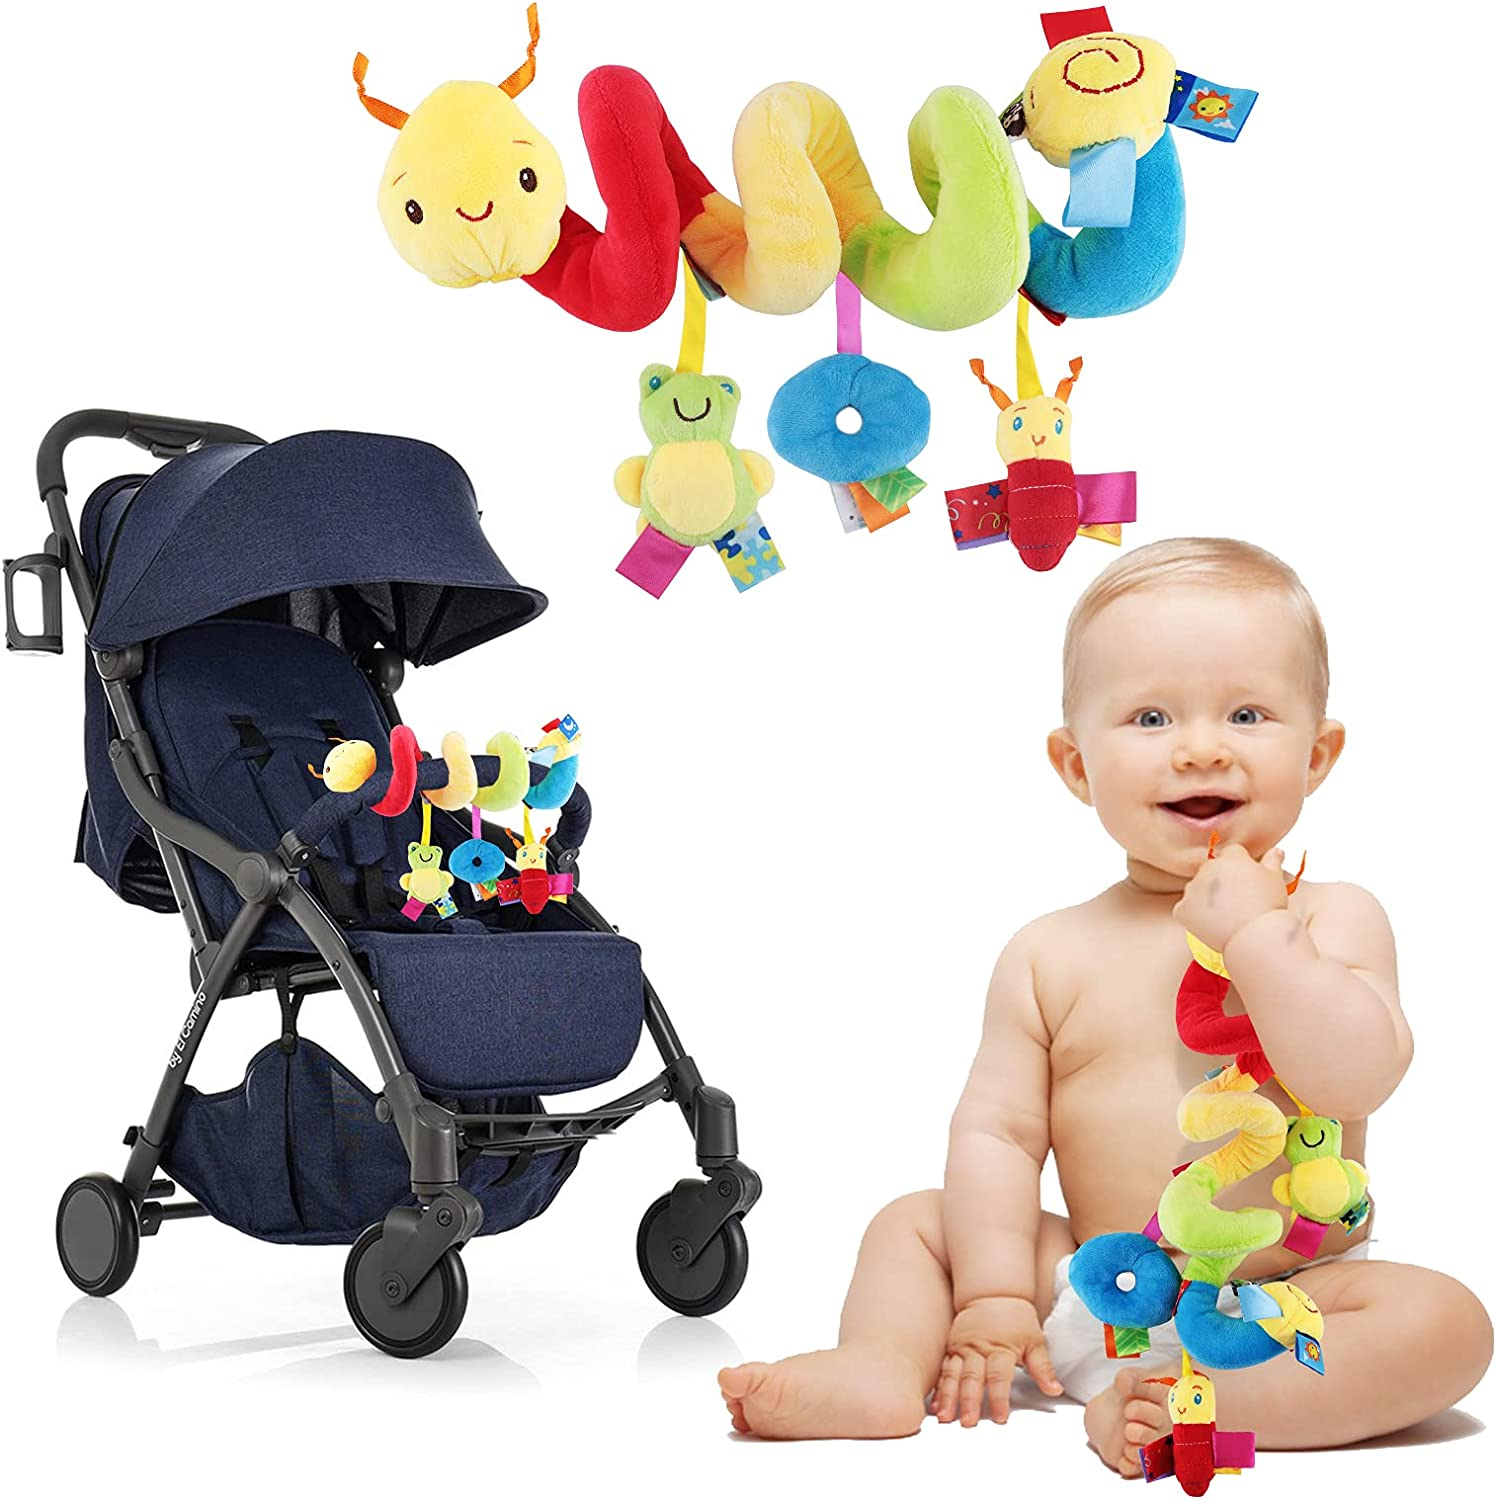 Baby Crib Hanging Rattles Toys Infant Baby Worm Crib Bed Around Rattle Bell Cartoon Insect Spiral Hanging Toy with Ringing Bell for Infants Bed Stroller Car Seat Bar for Babies Boys and Girls